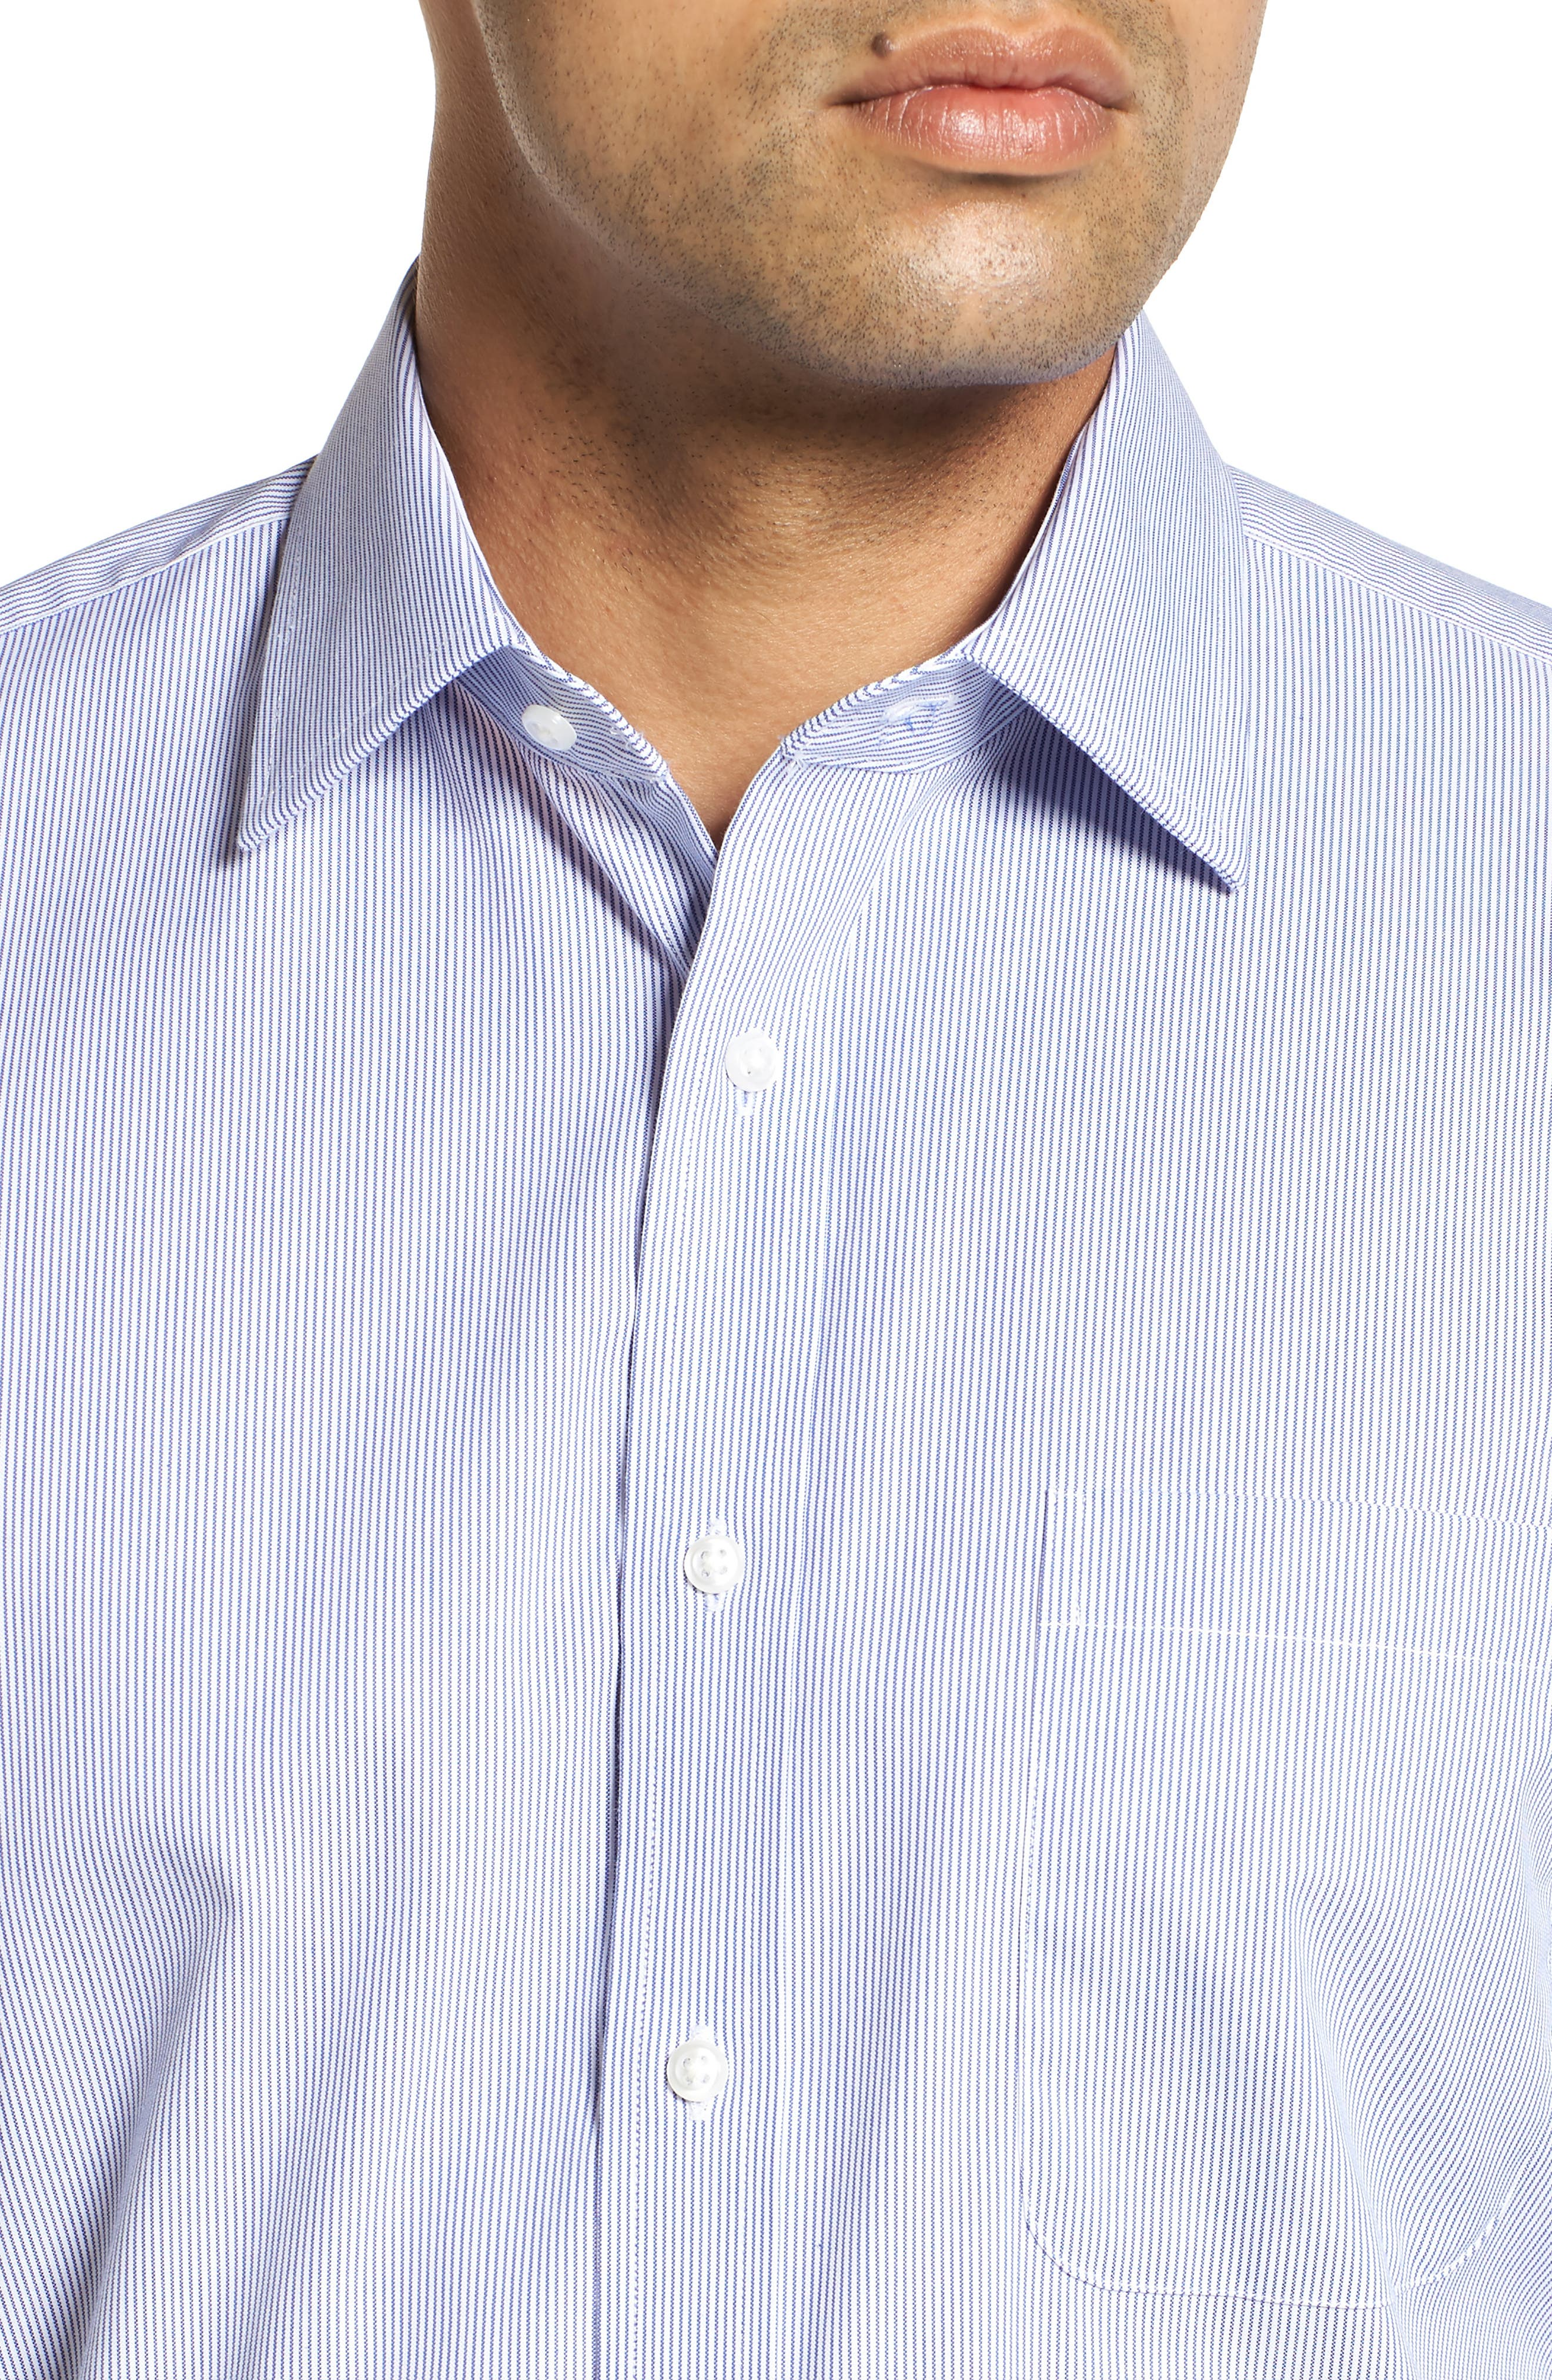 Traditional Fit Non-Iron Stripe Dress Shirt,                             Alternate thumbnail 2, color,                             NAVY PATRIOT